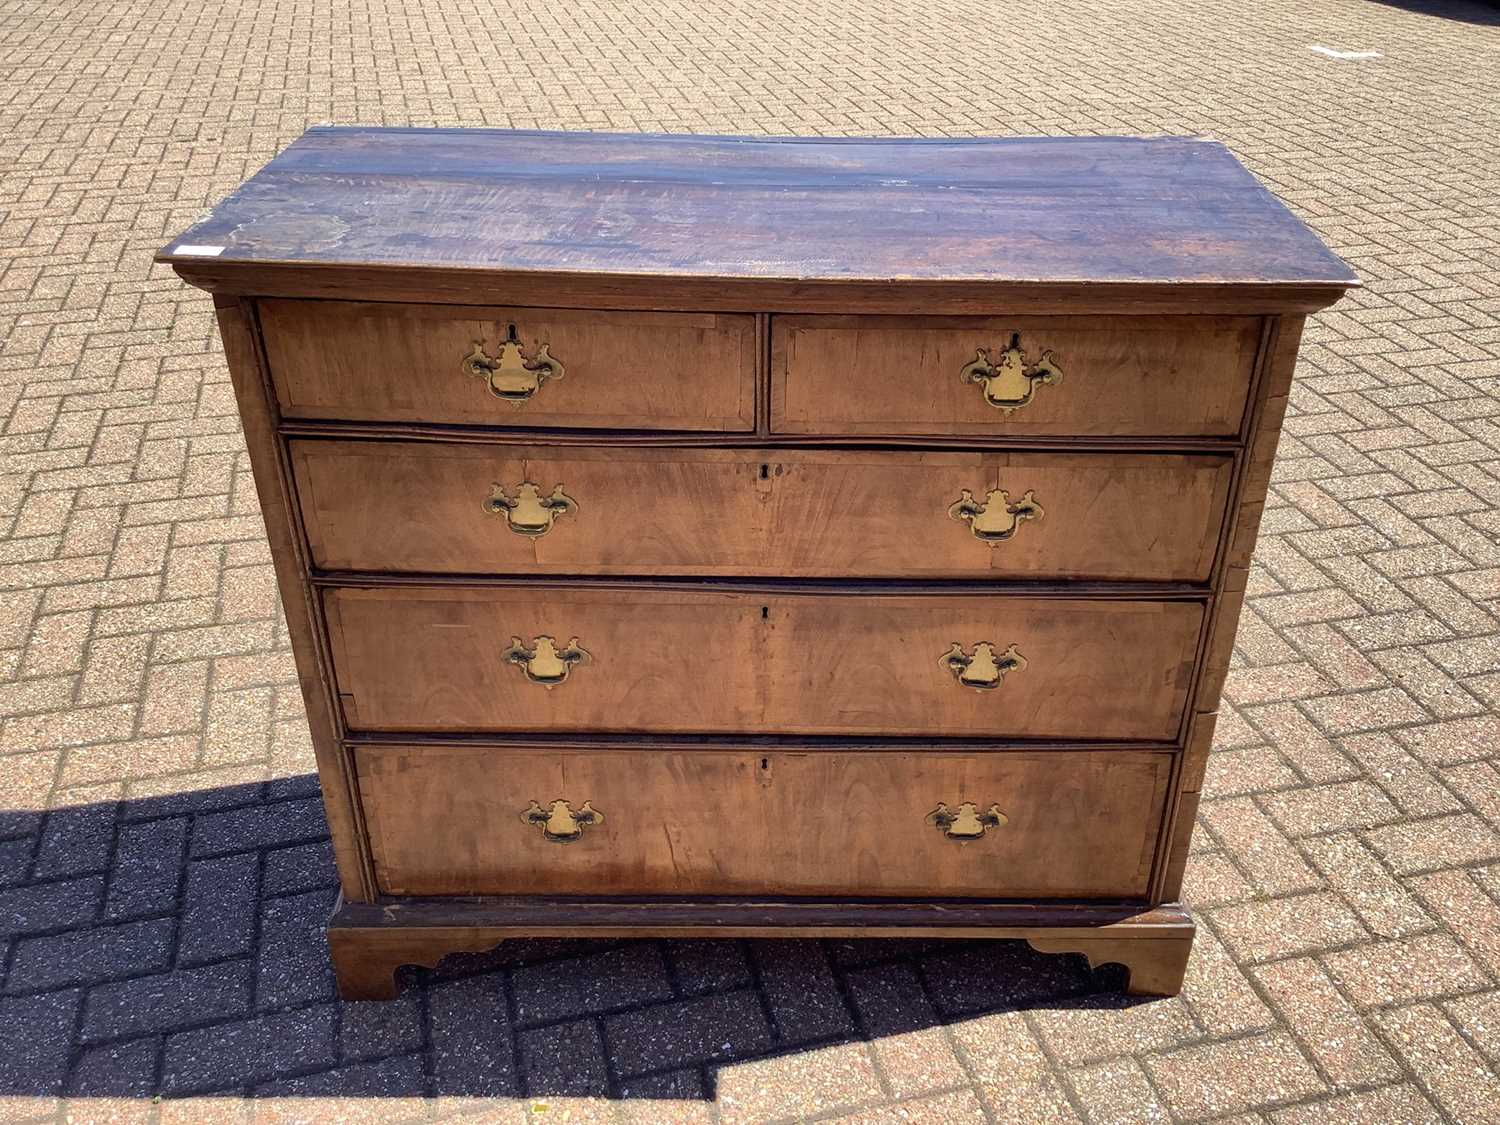 19th century Continental walnut chest of drawers